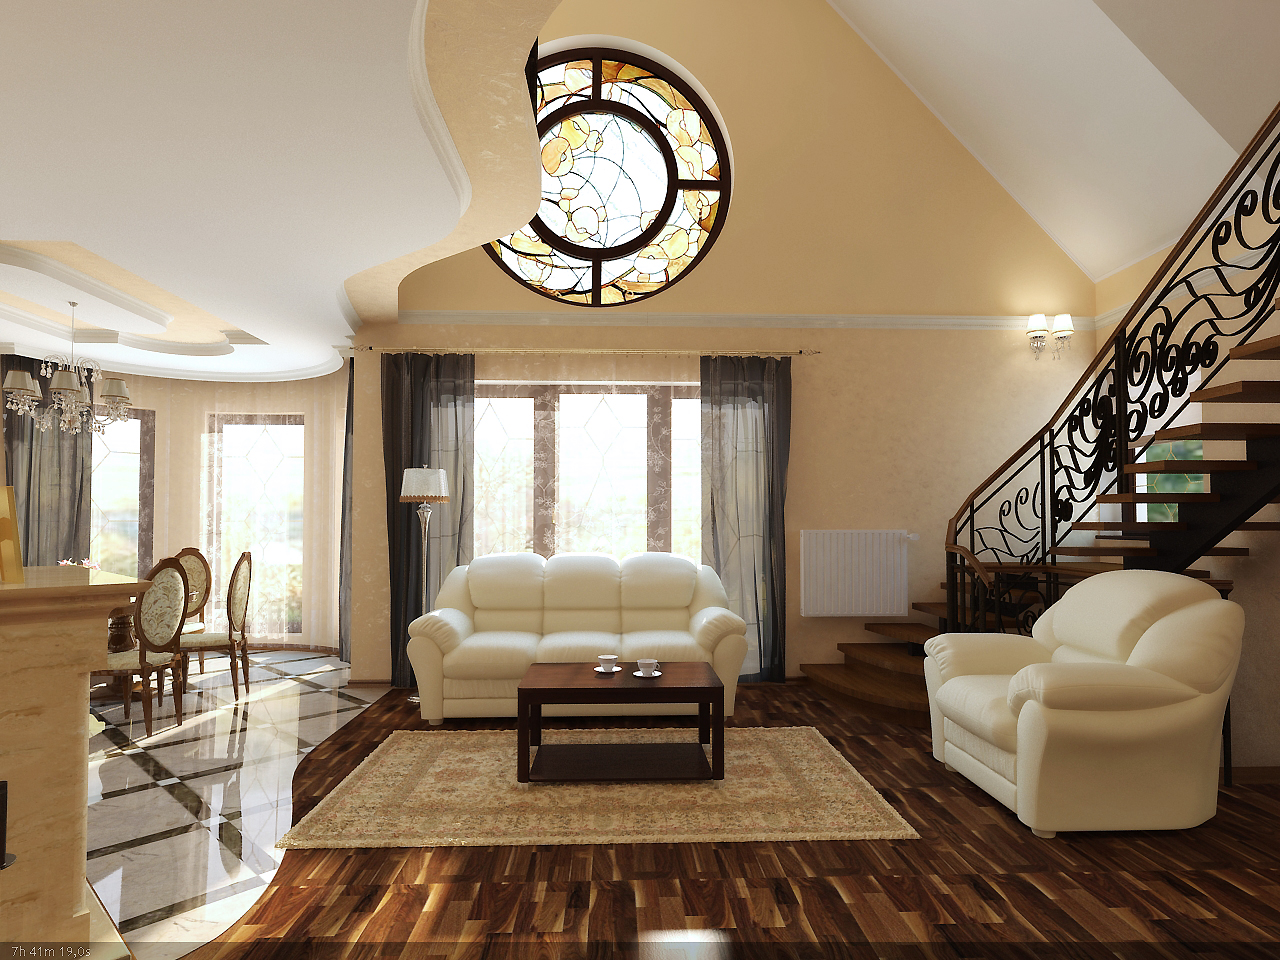 houses interior design photos house designer today